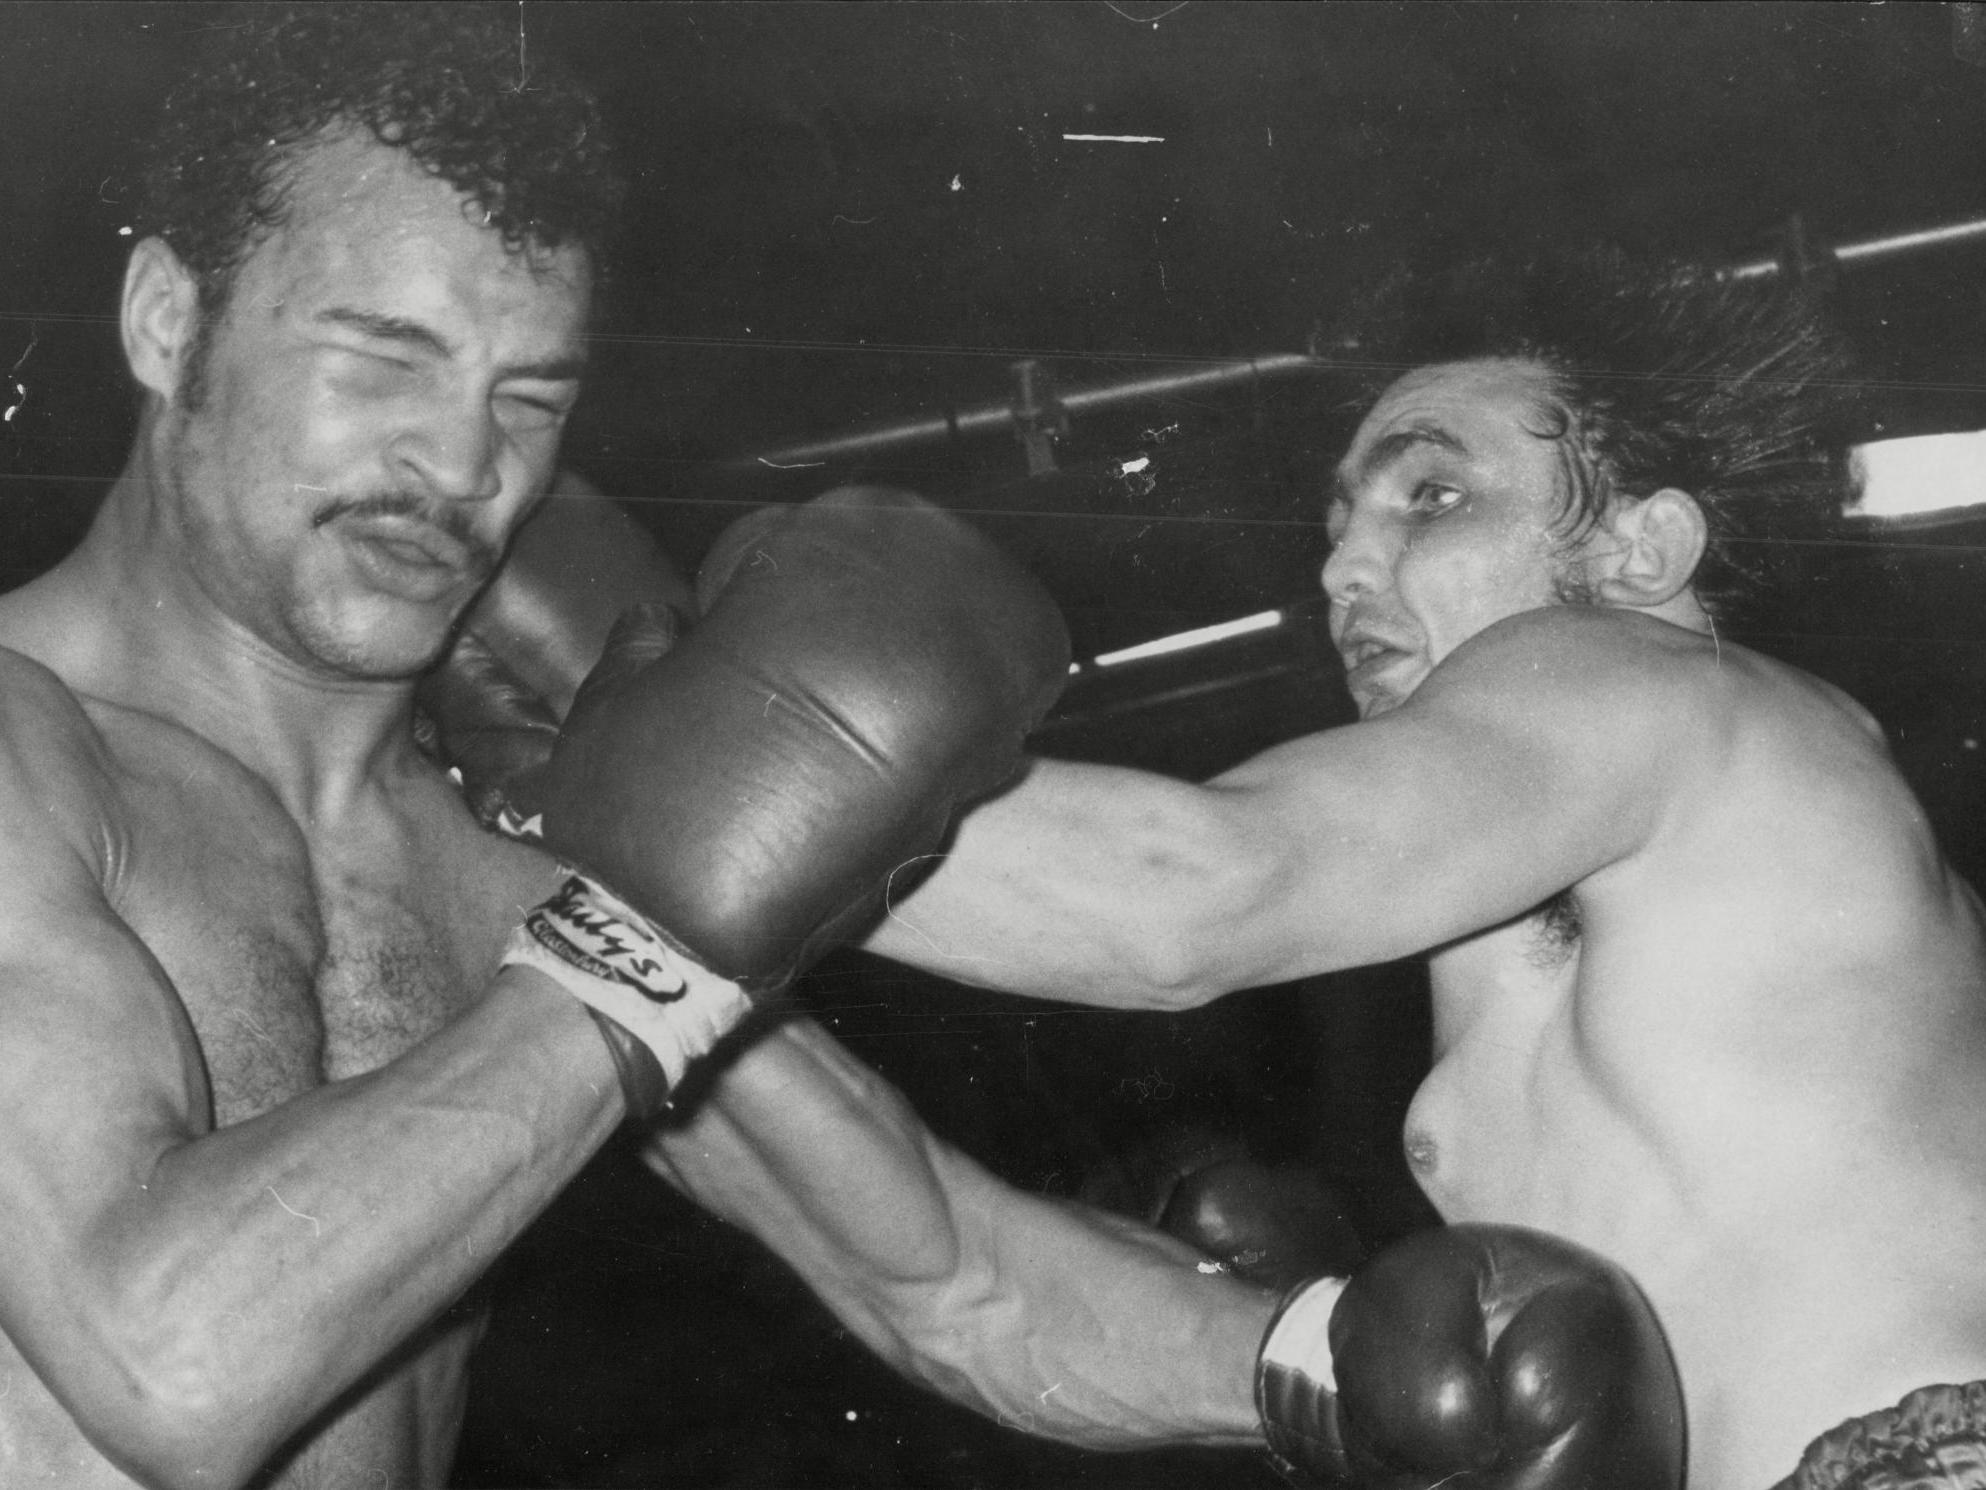 Remembering the great Les Stevens: A terrific fighter, an iconic trainer, and one of British boxing's finest men